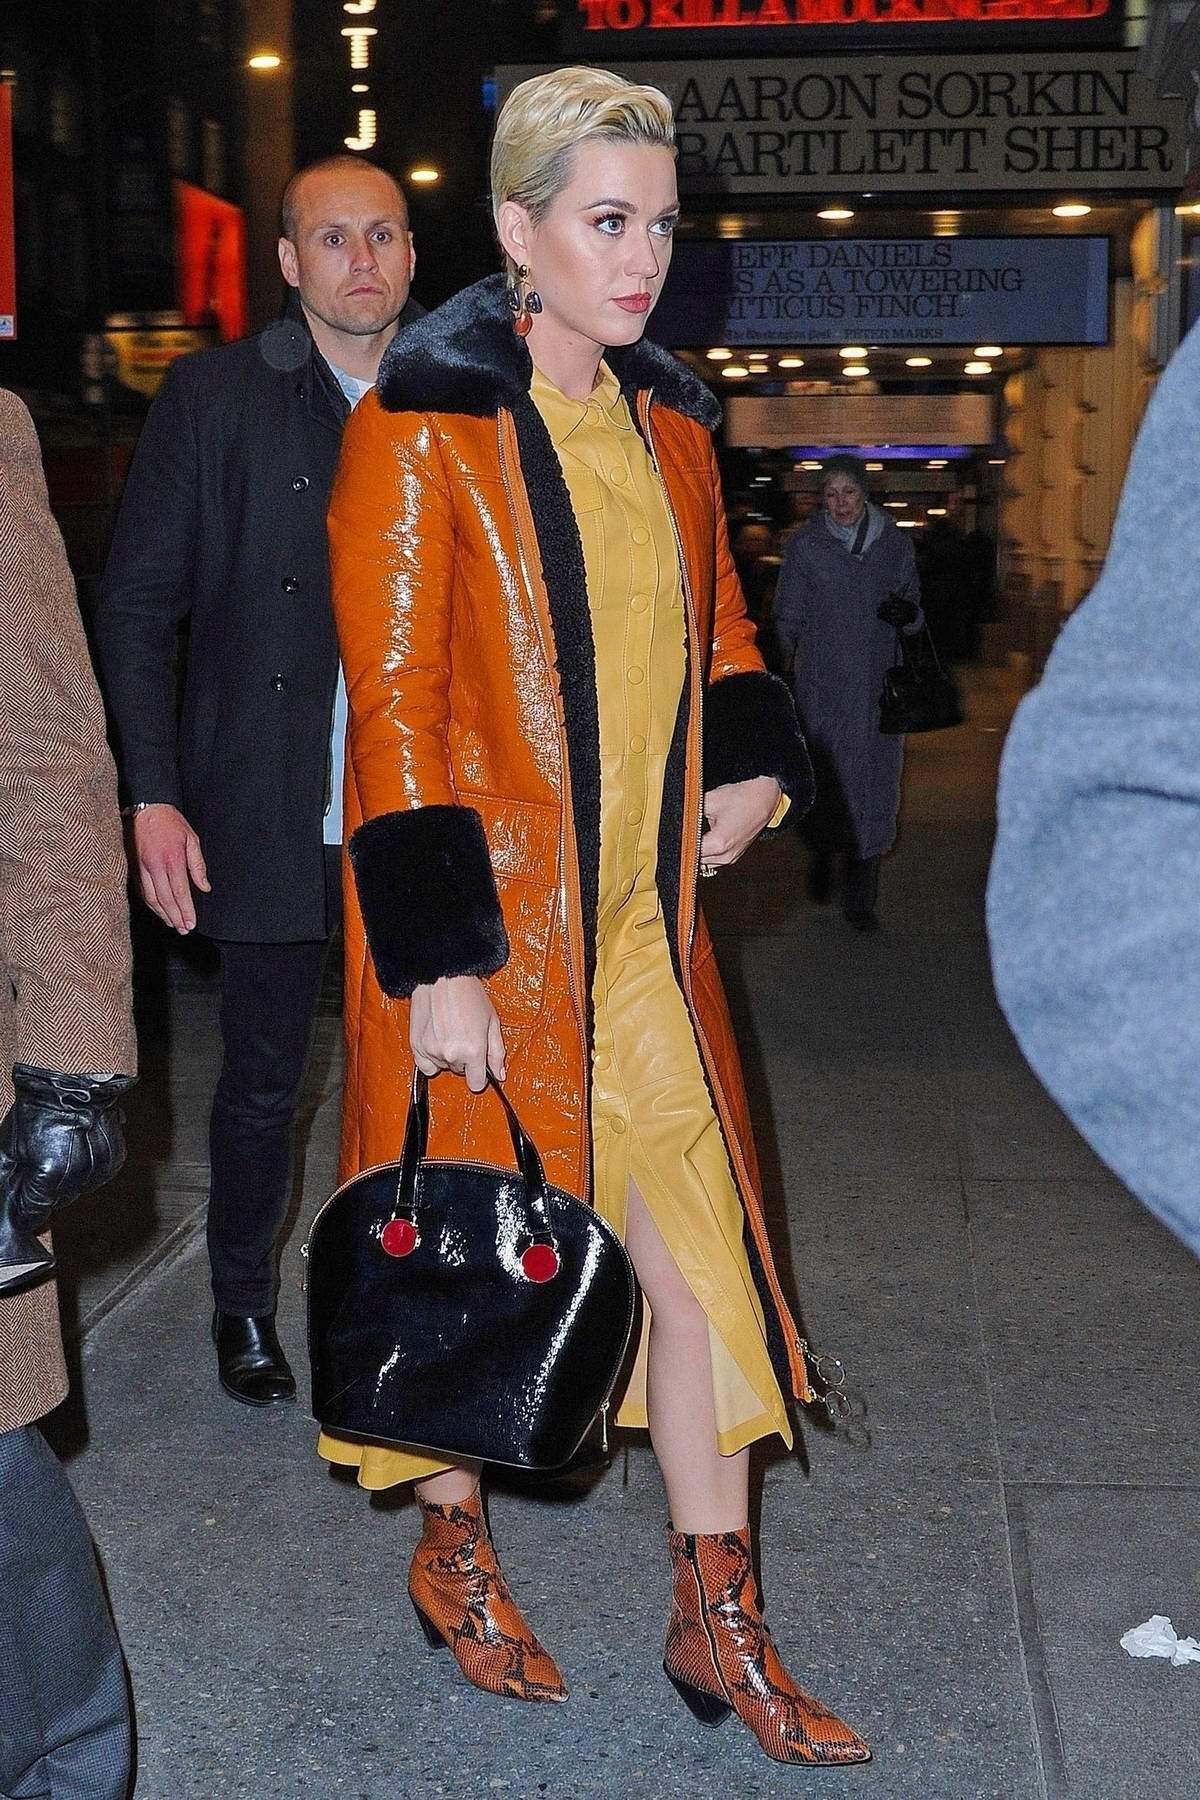 Katy Perry shows off her new engagement ring as she arrives at the 'To Kill a Mockingbird' on Broadway show in New York City